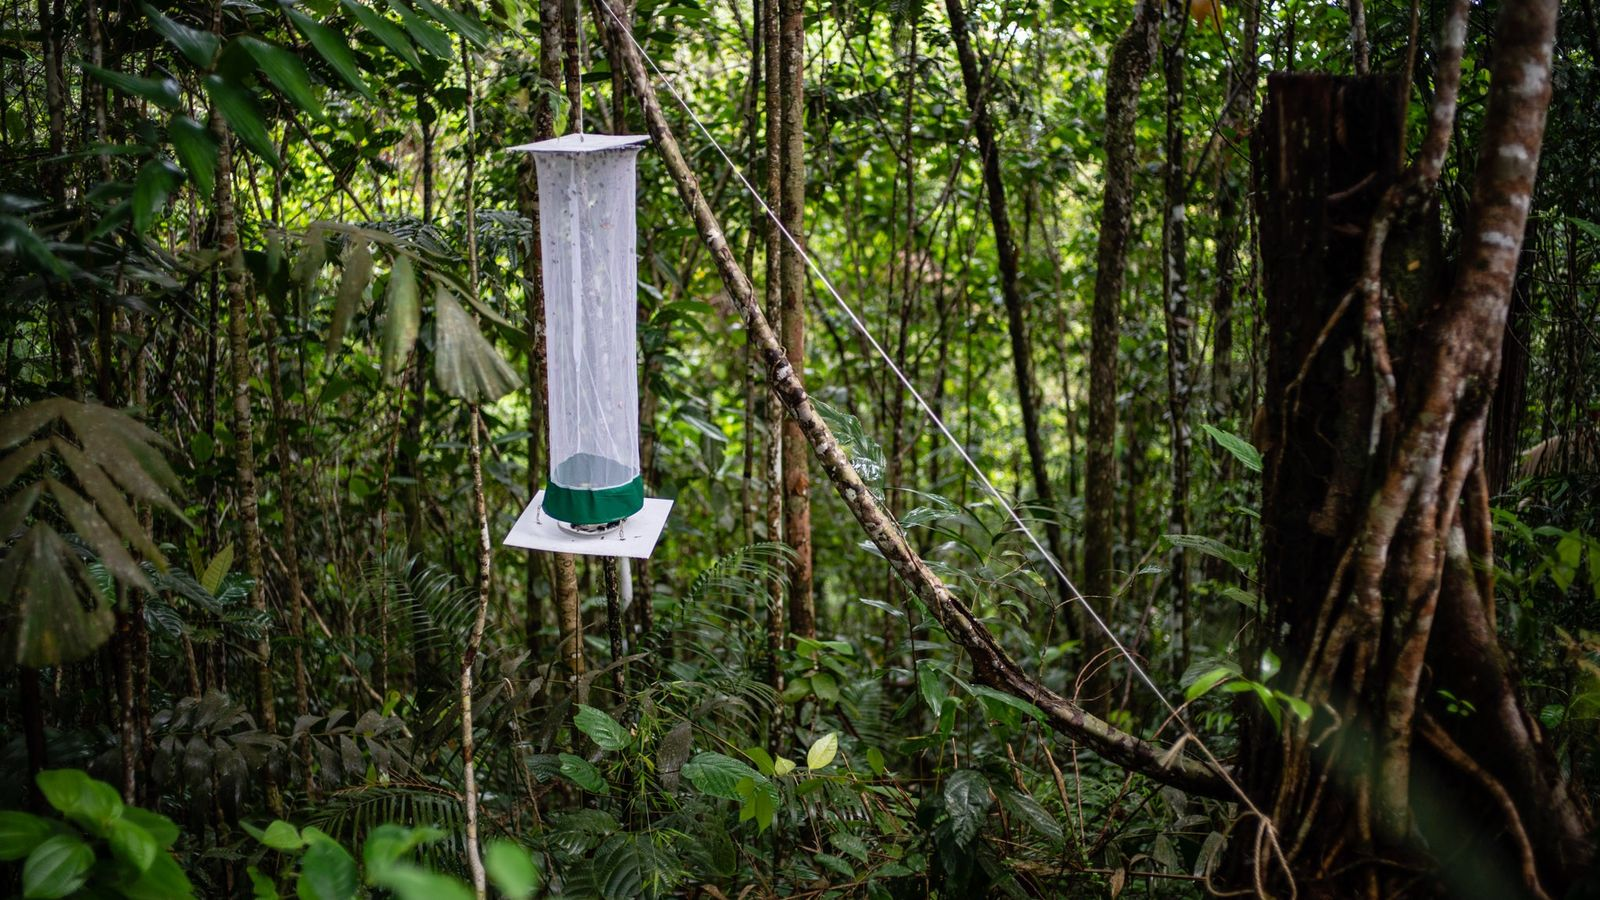 Scientists use traps like these to catch the butterflies for study.